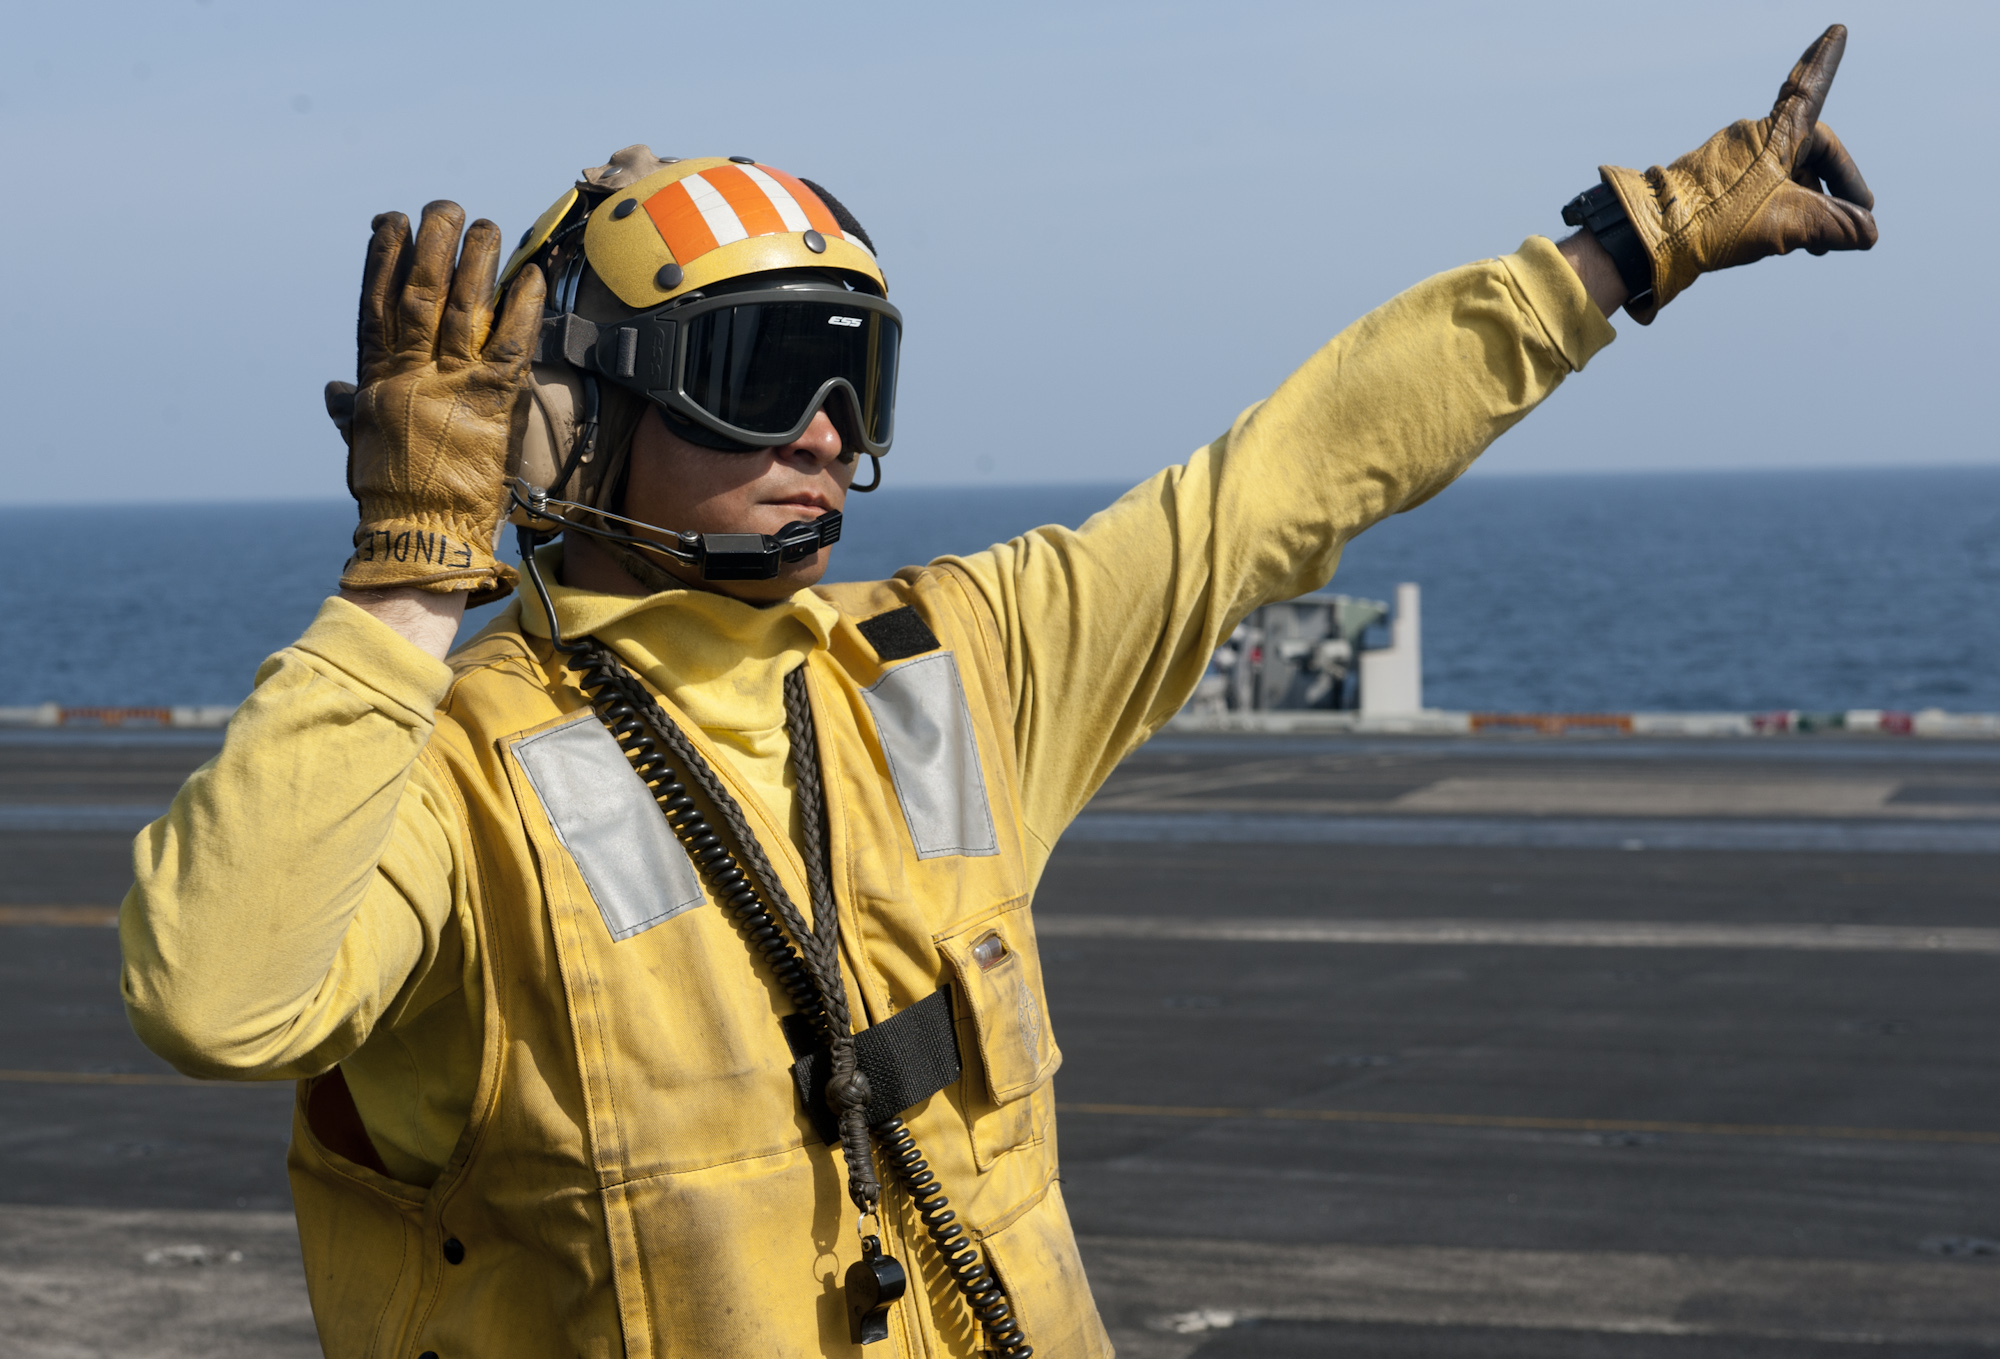 File:US Navy 120105-N-OY799-521 Aviation Boatswain's Mate ...